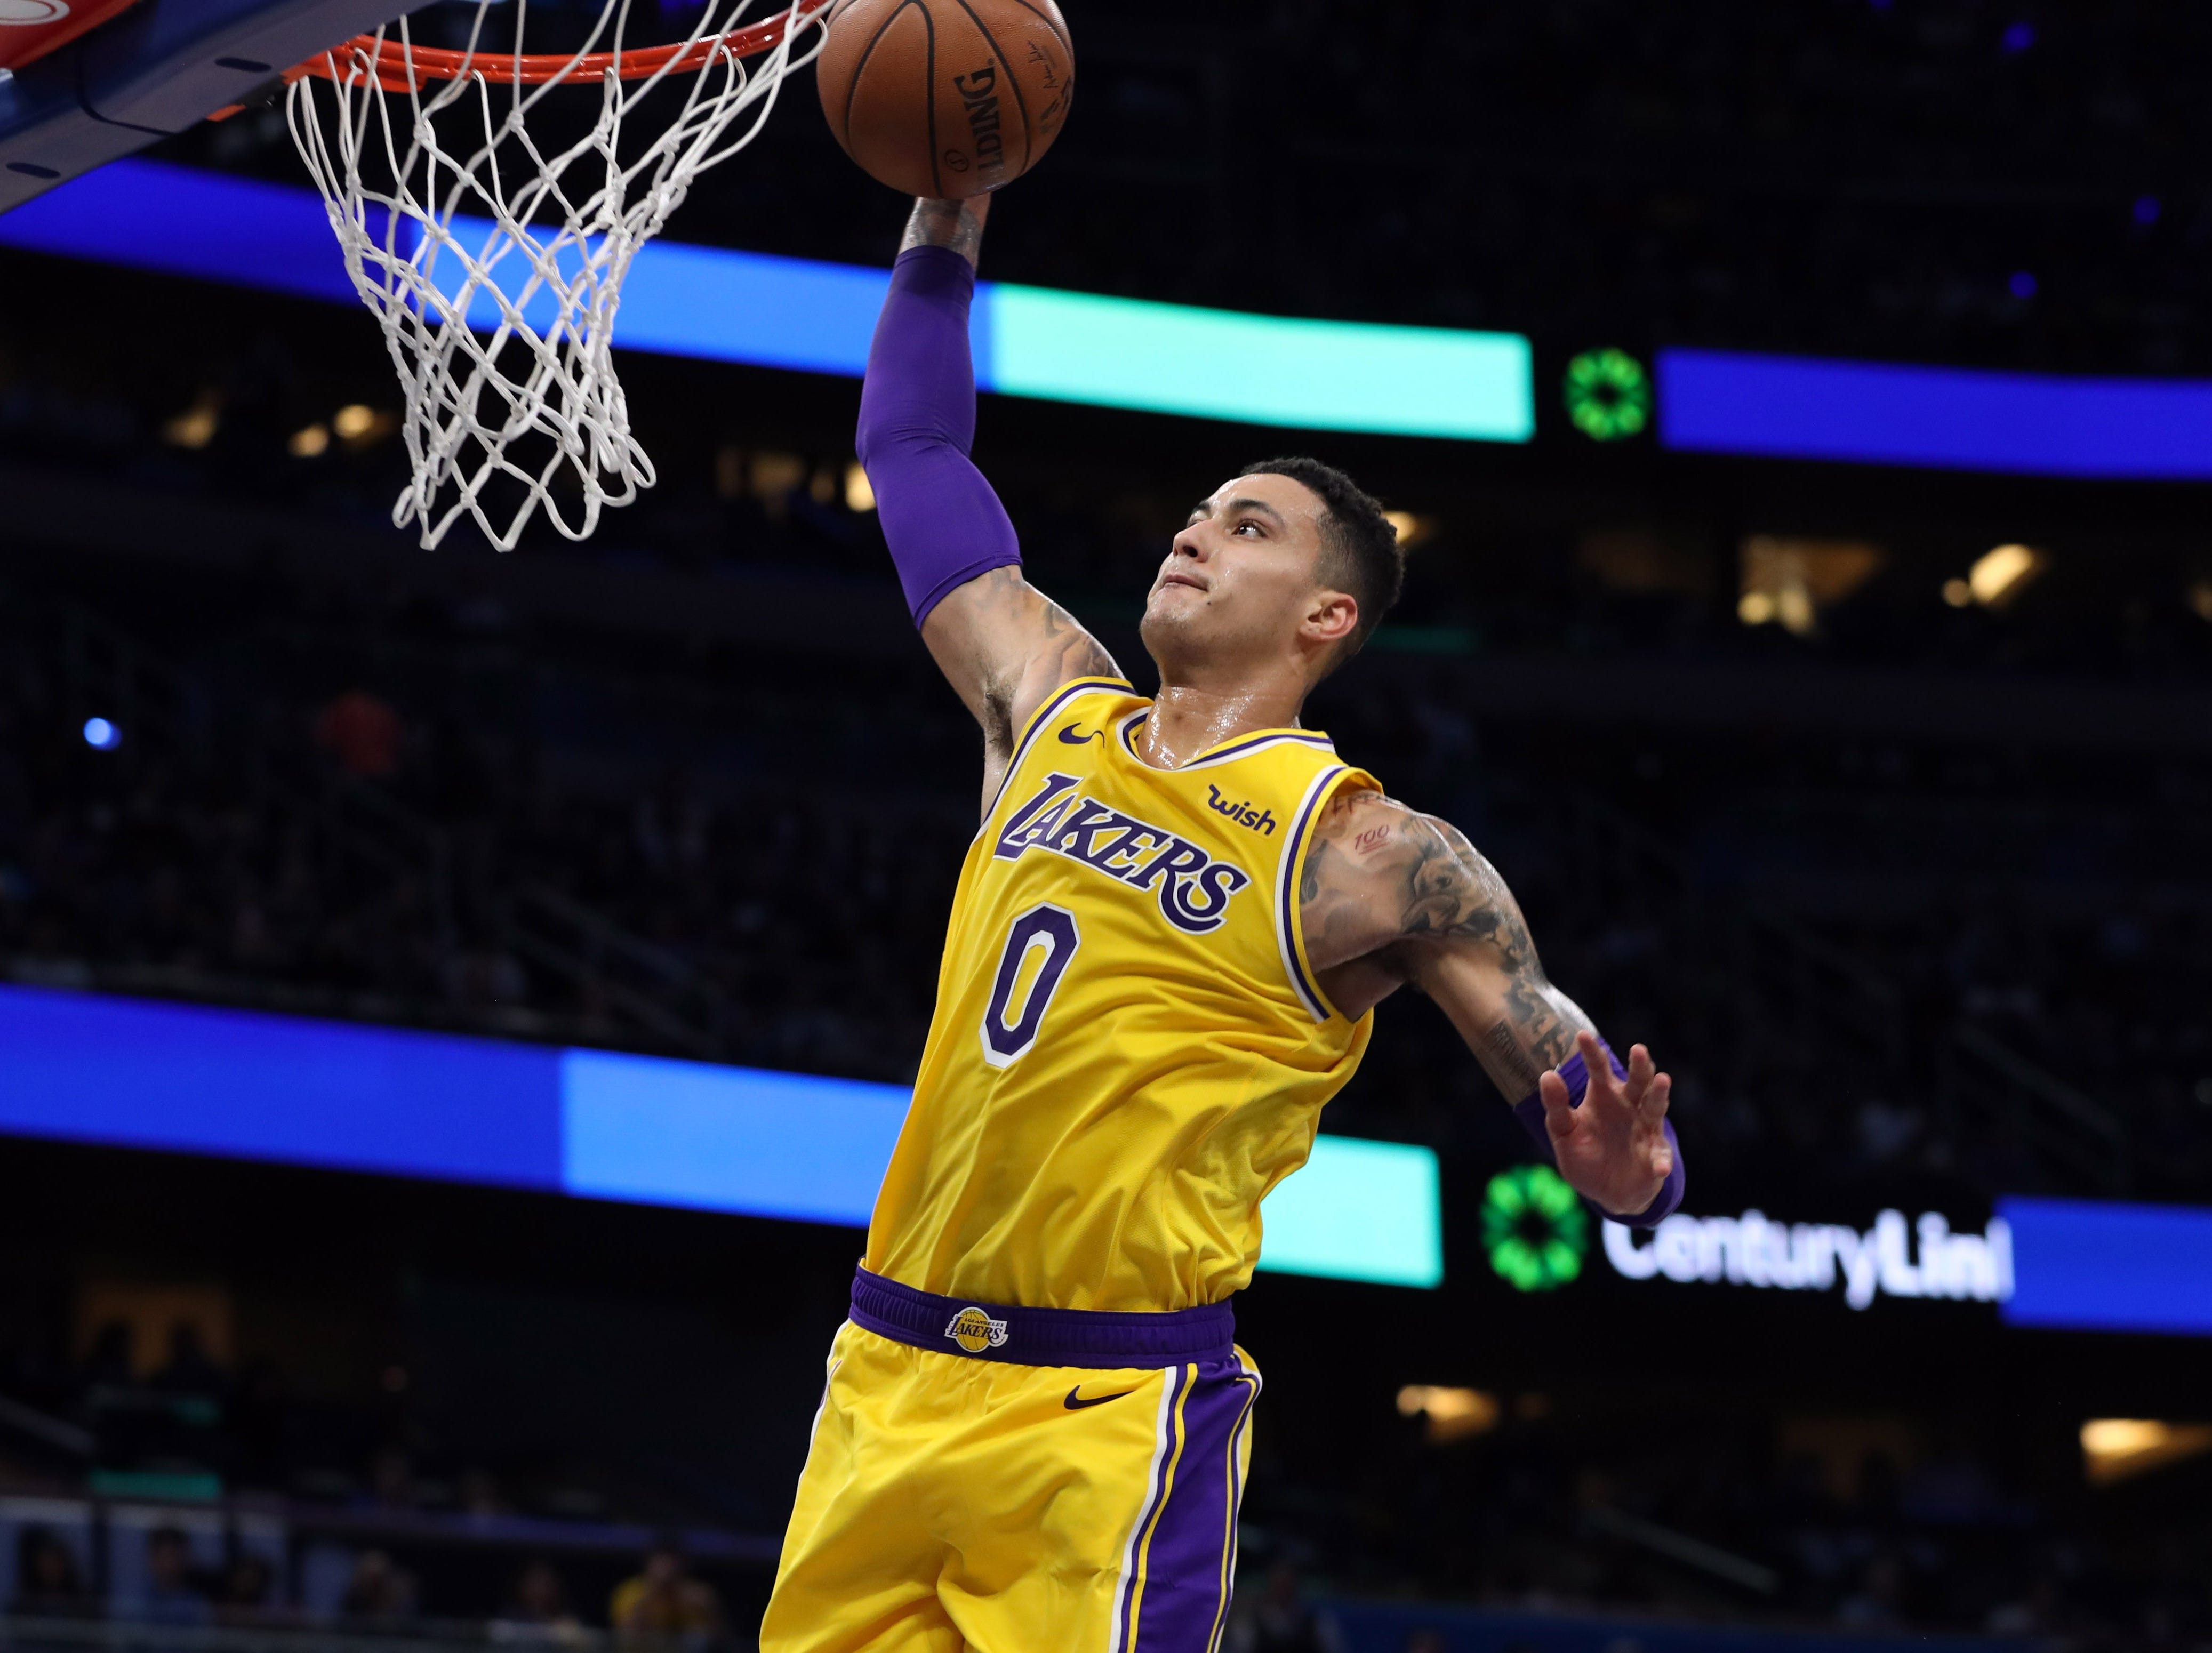 Nov. 17: Lakers forward Kyle Kuzma finishes the fastbreak with a one-handed slam during the first half against the Magic.